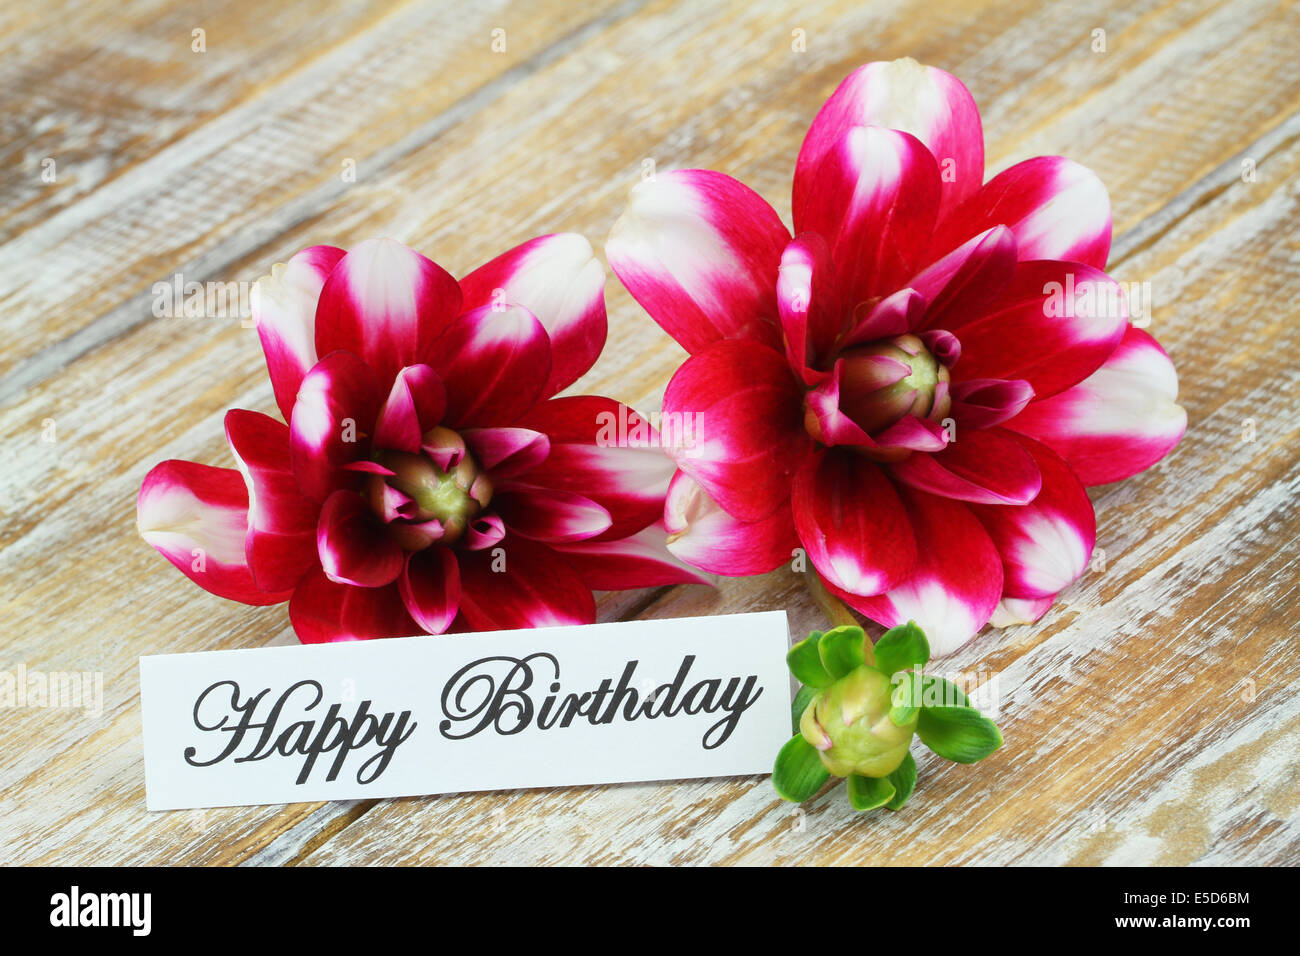 Happy Birthday Card Dahlia Flowers Stock Photos Happy Birthday